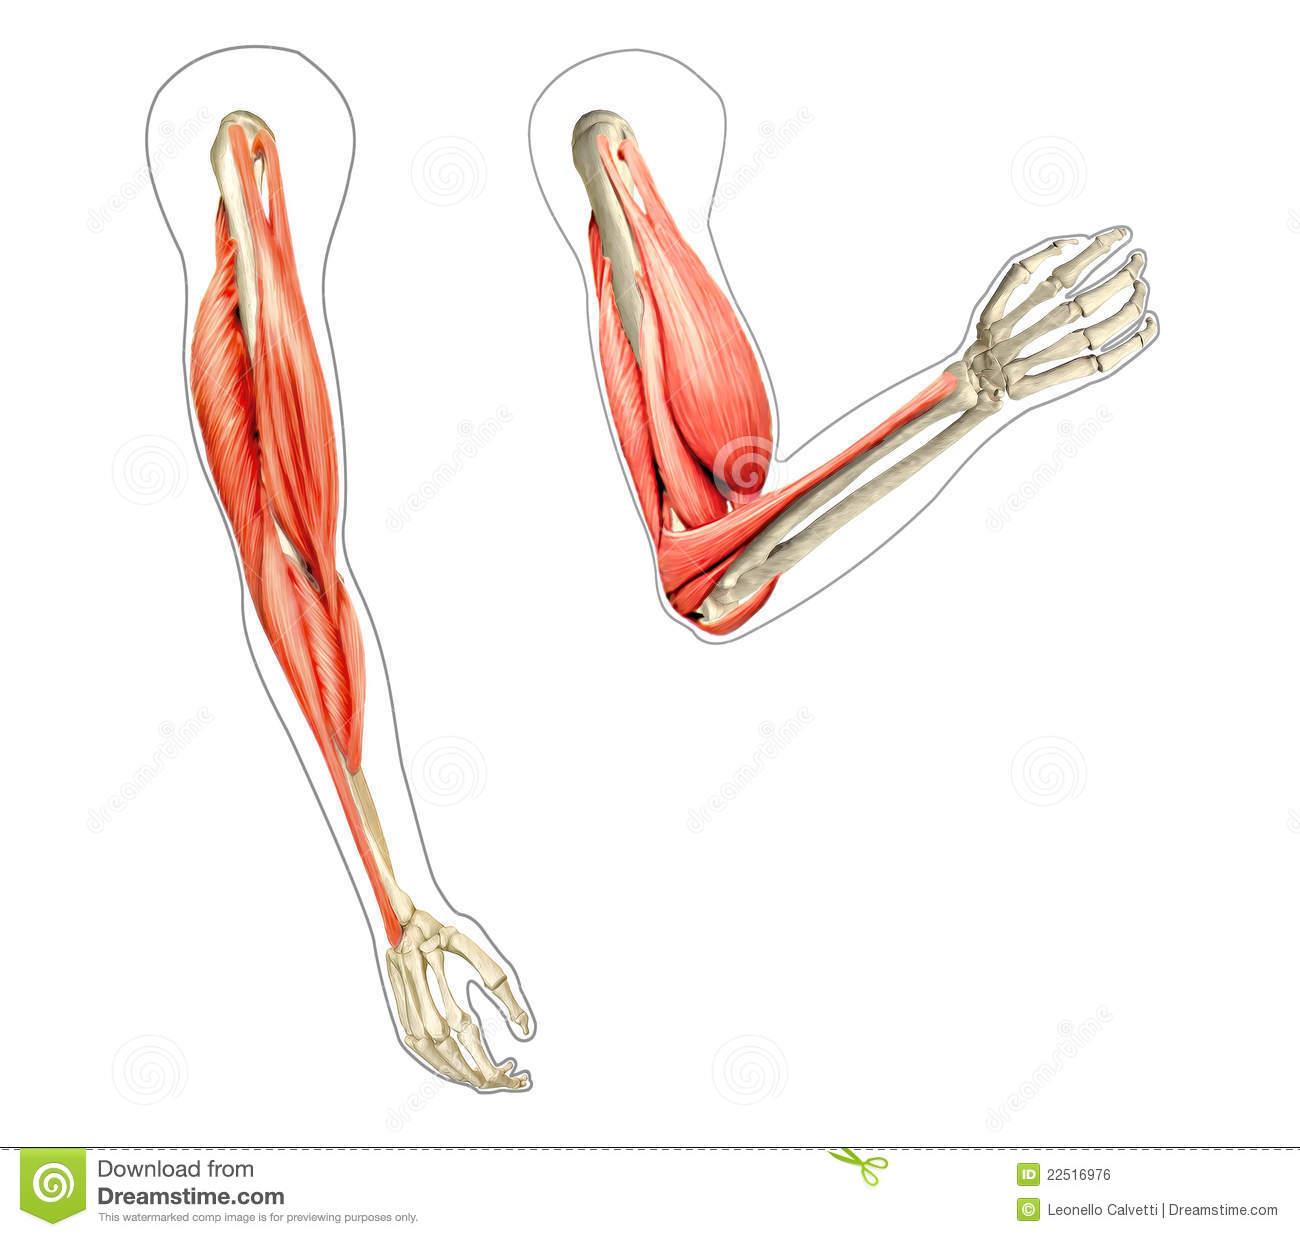 hand muscles diagram 2 way light switch human arms anatomy diagrams stock illustration